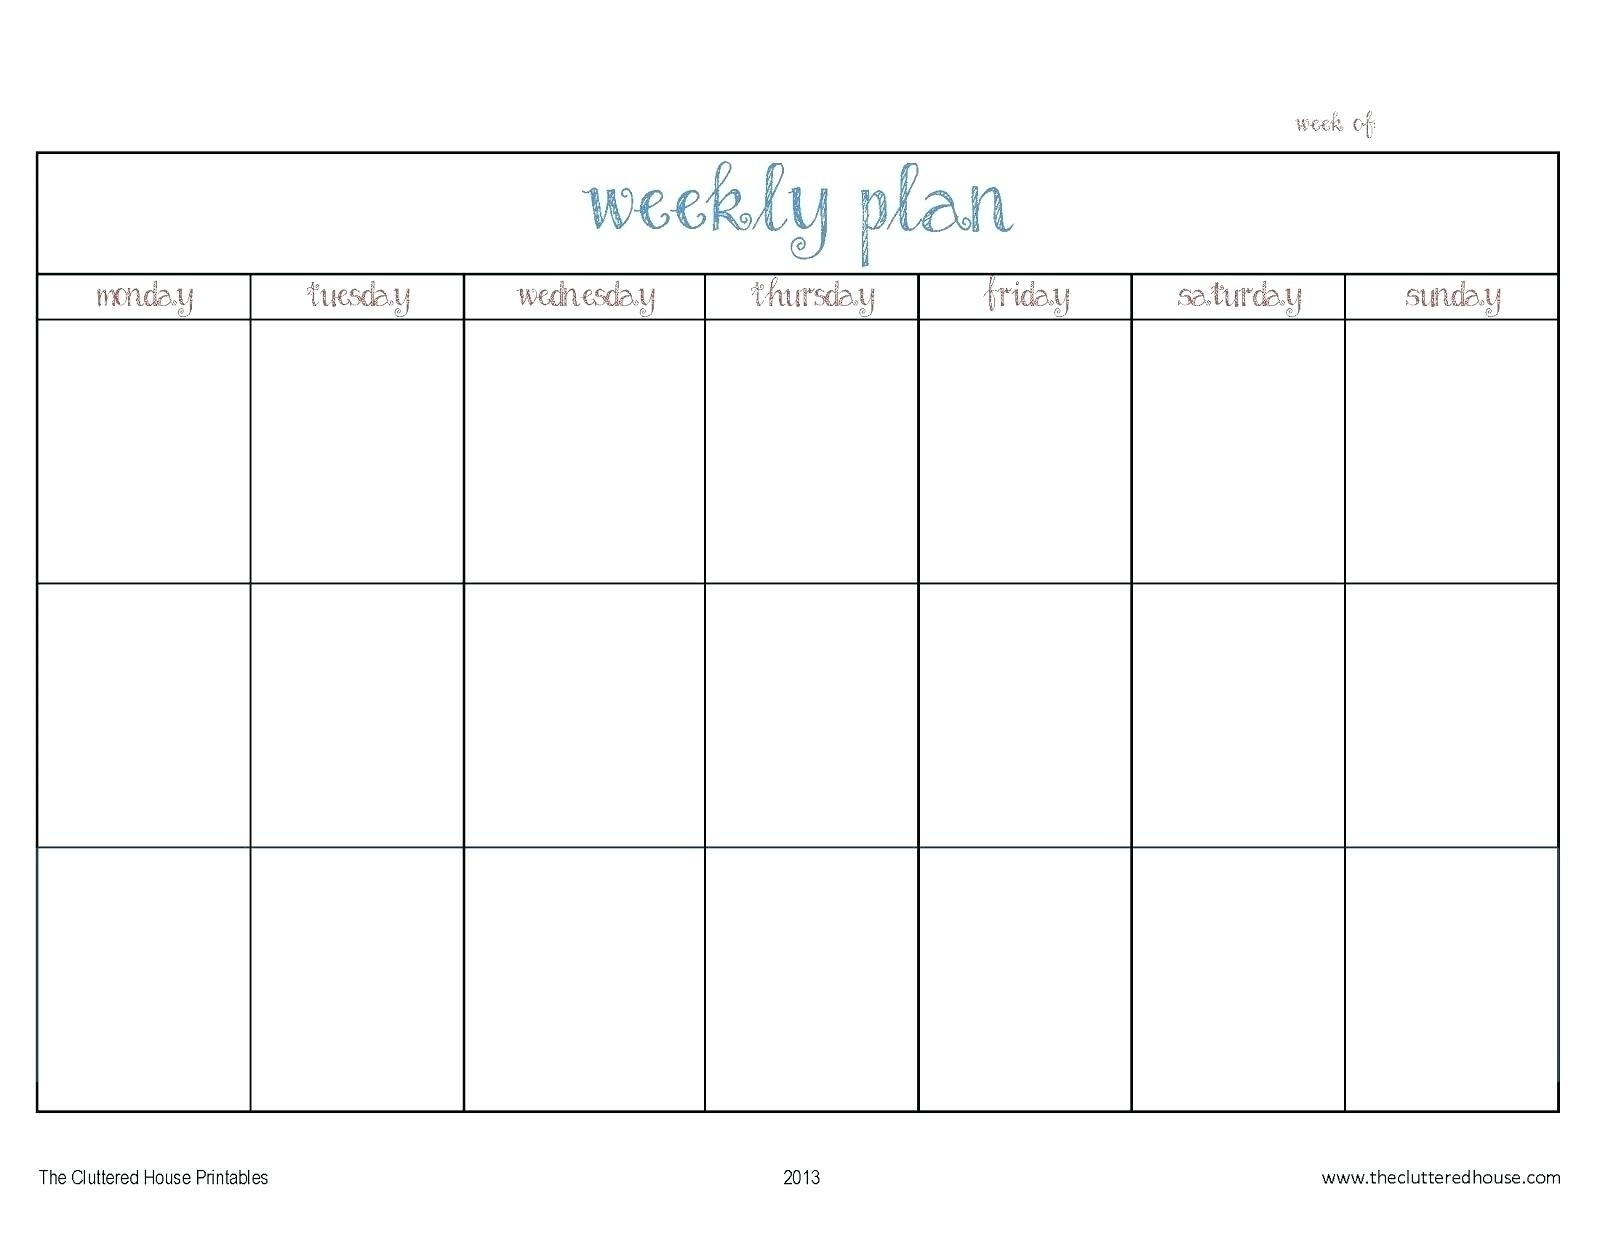 Monday Through Friday Calender Blank Template Printable within Calendar Monday Through Friday